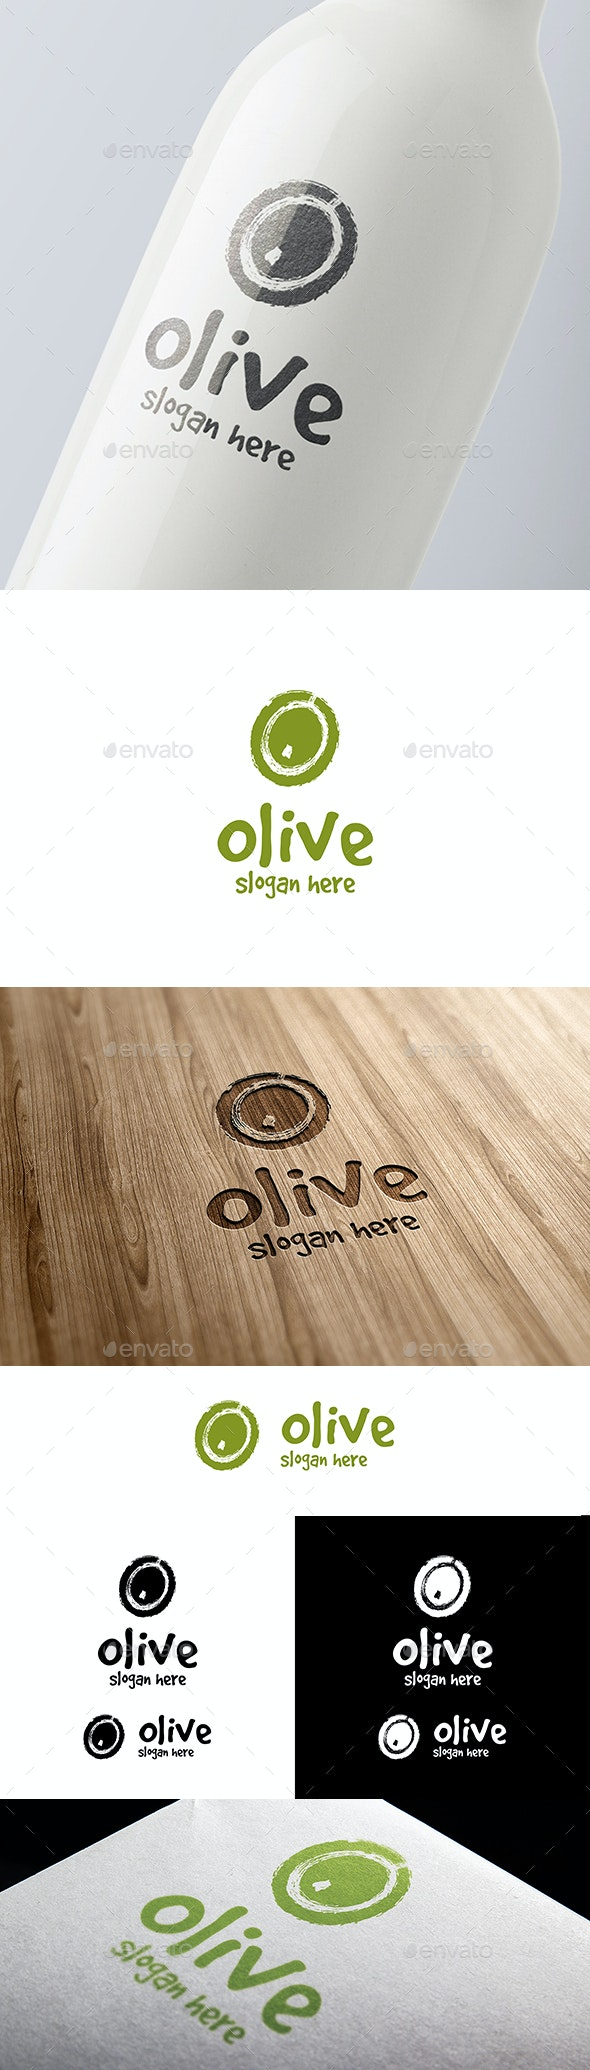 Green Olive Vector Logo in a Grunge Style - Food Logo Templates